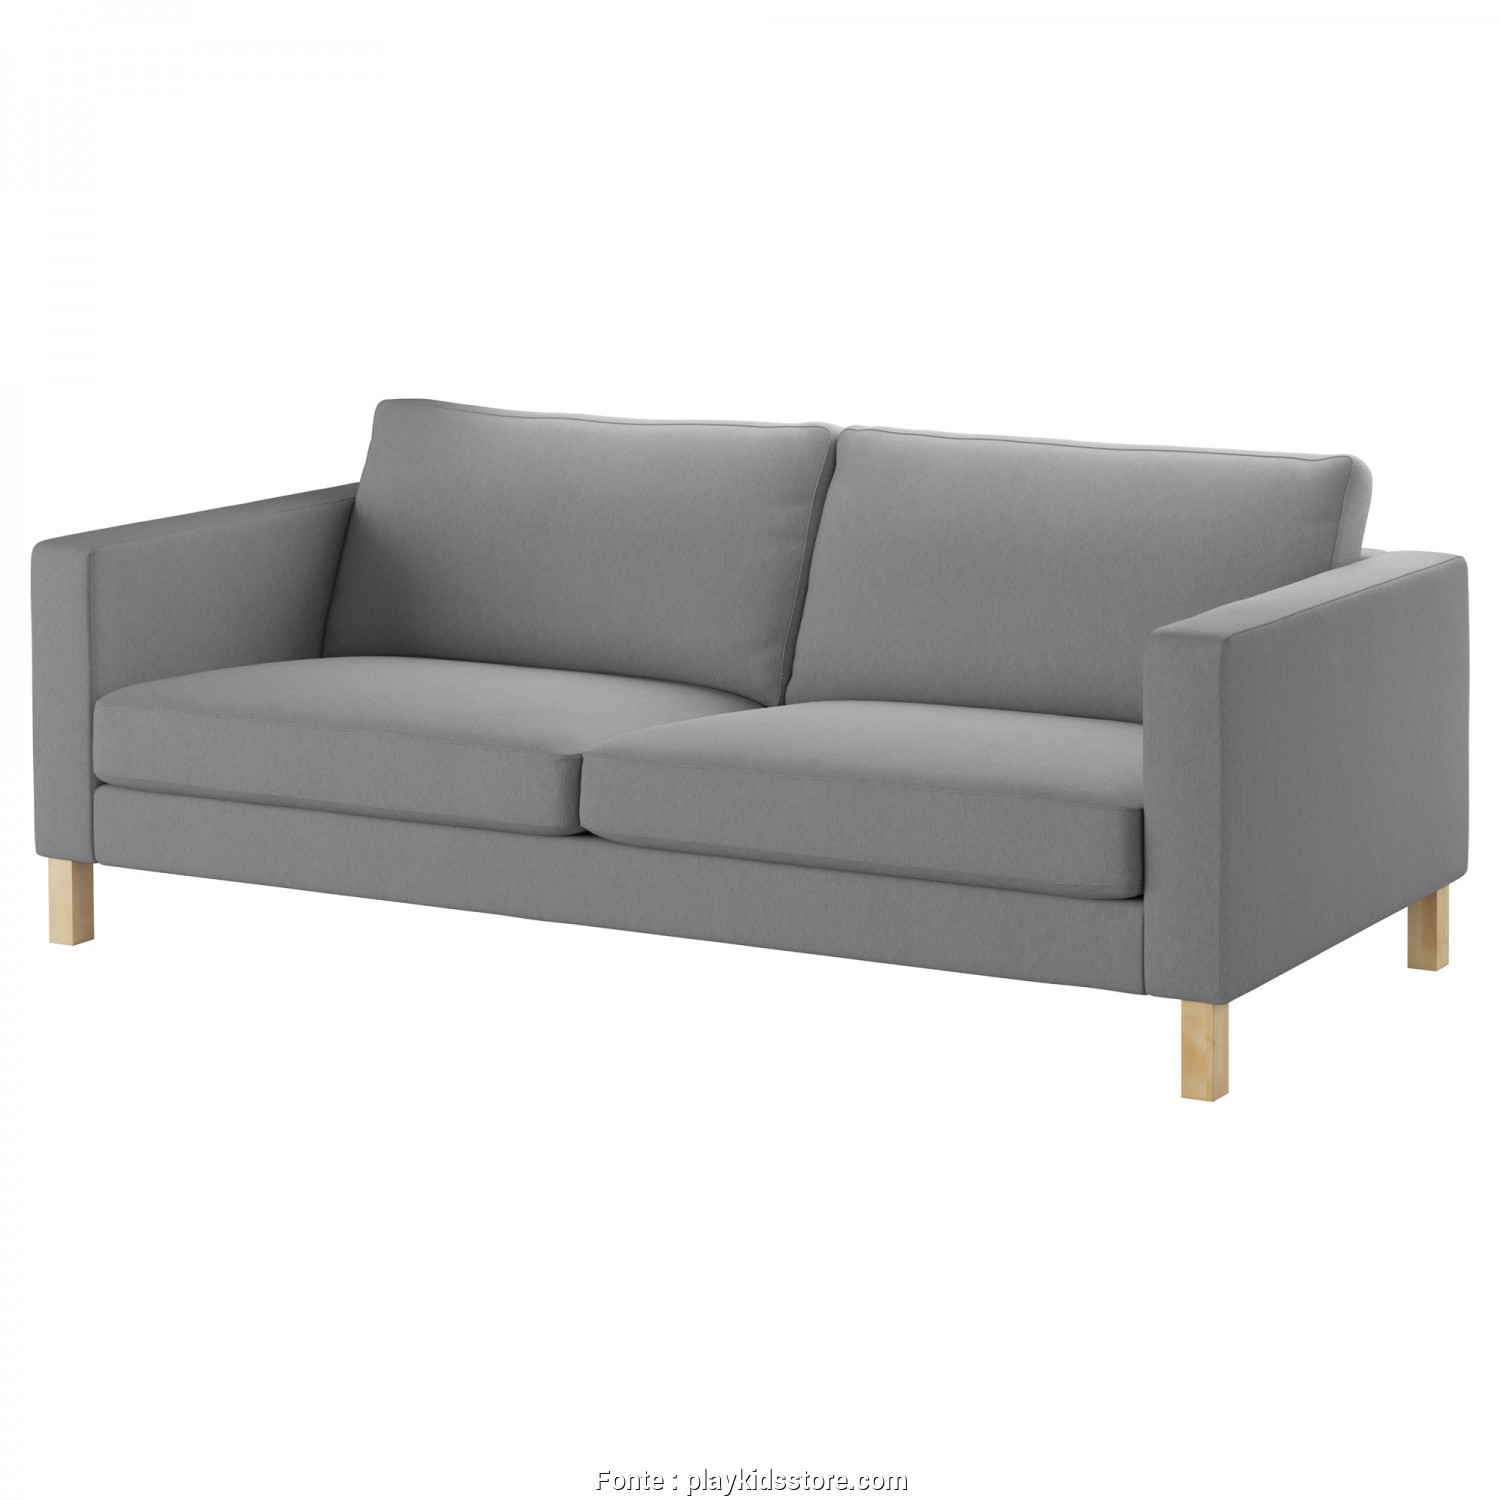 Ikea Beddinge Grey Cover, Delizioso Furniture: Stunning Ikea Karlstad Sofa Cover, Your Sofa Need